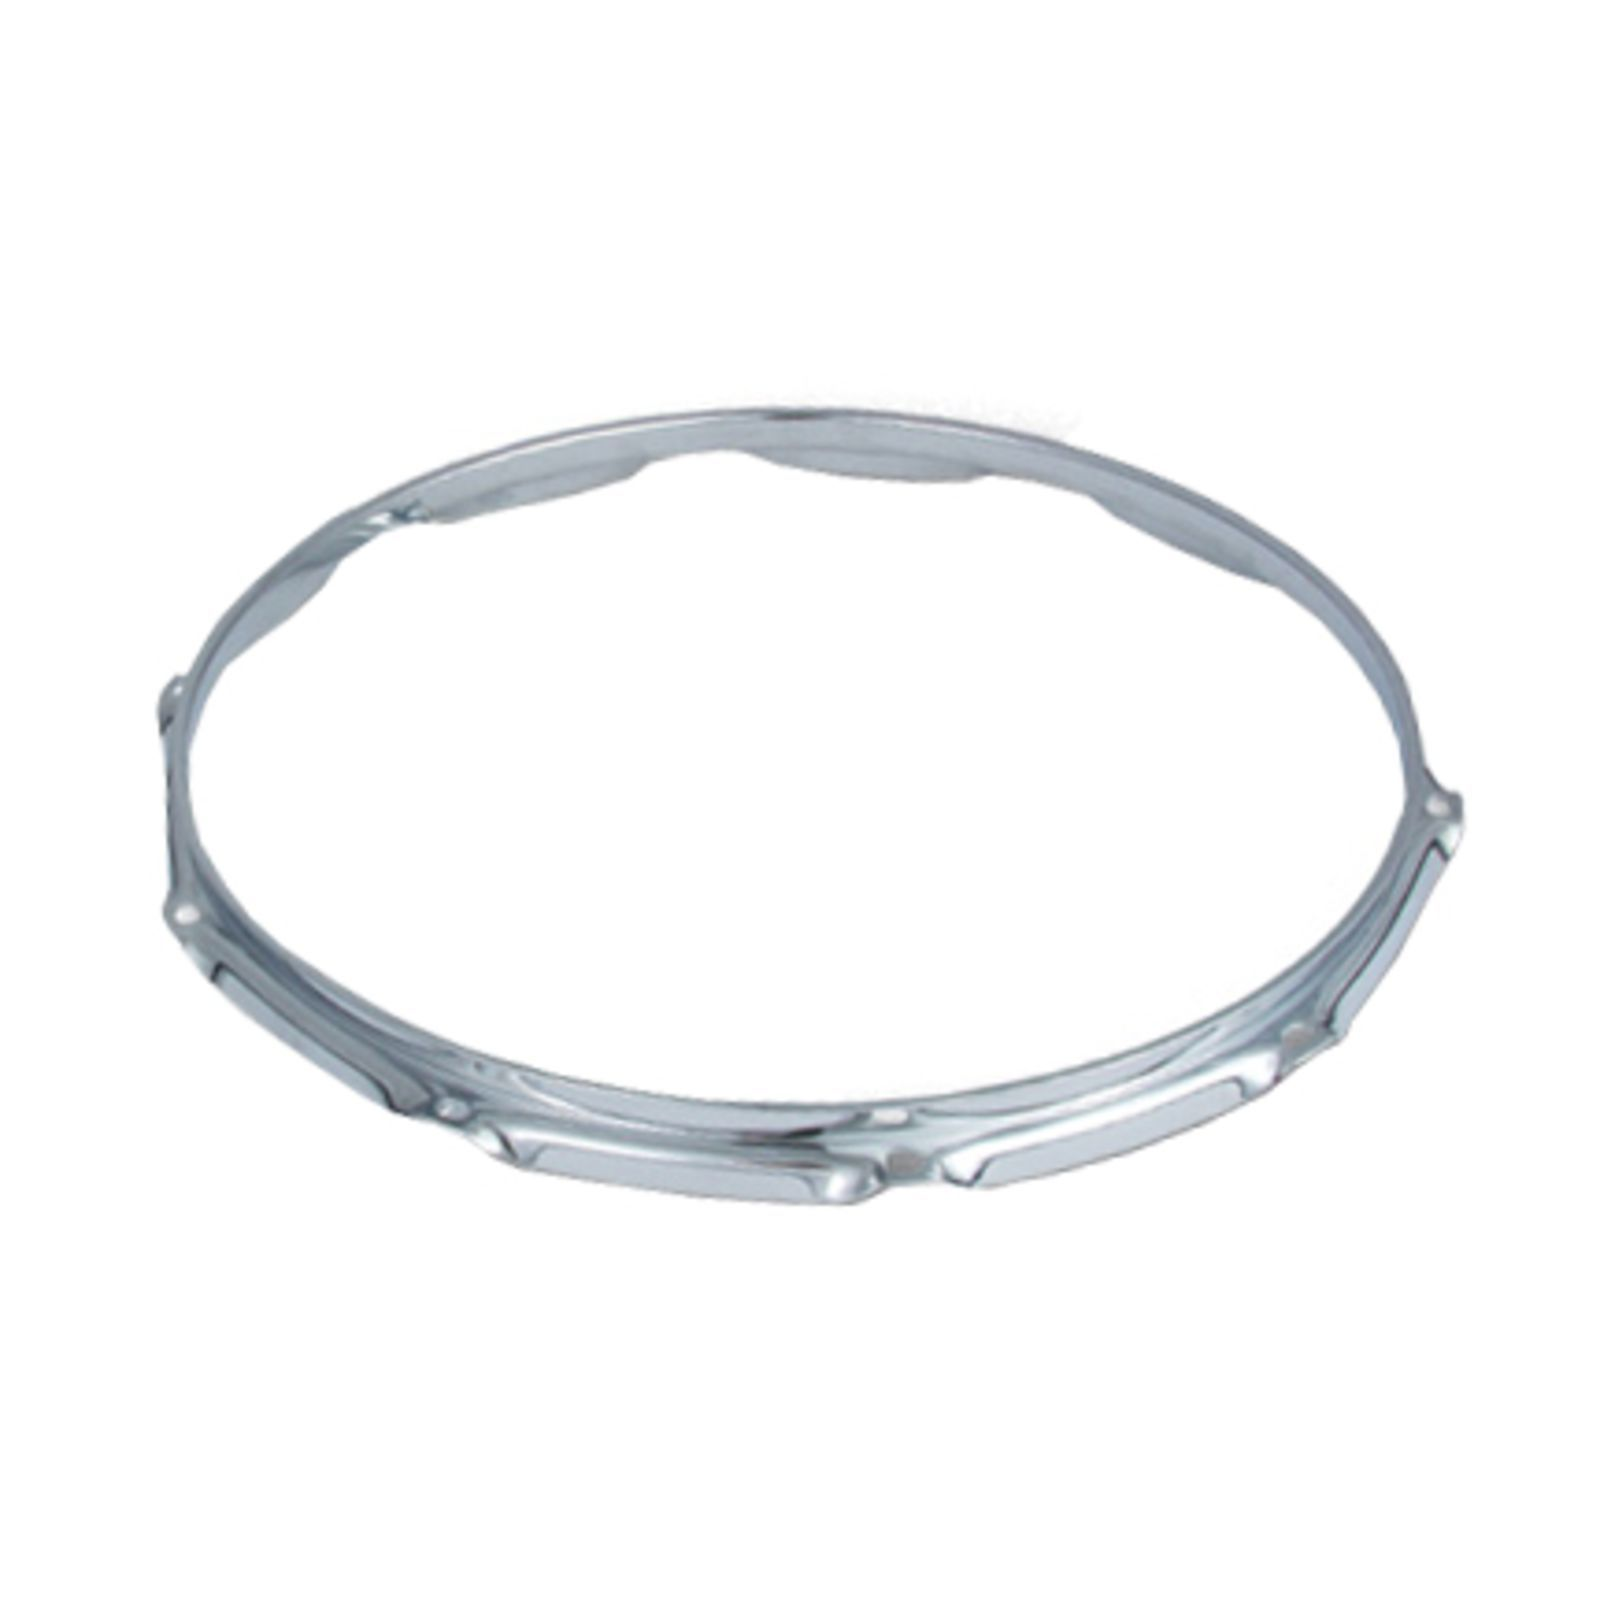 "Gibraltar Power Hoop SC-1206TT, 2.3 mm, 12"", 6-Lug Product Image"